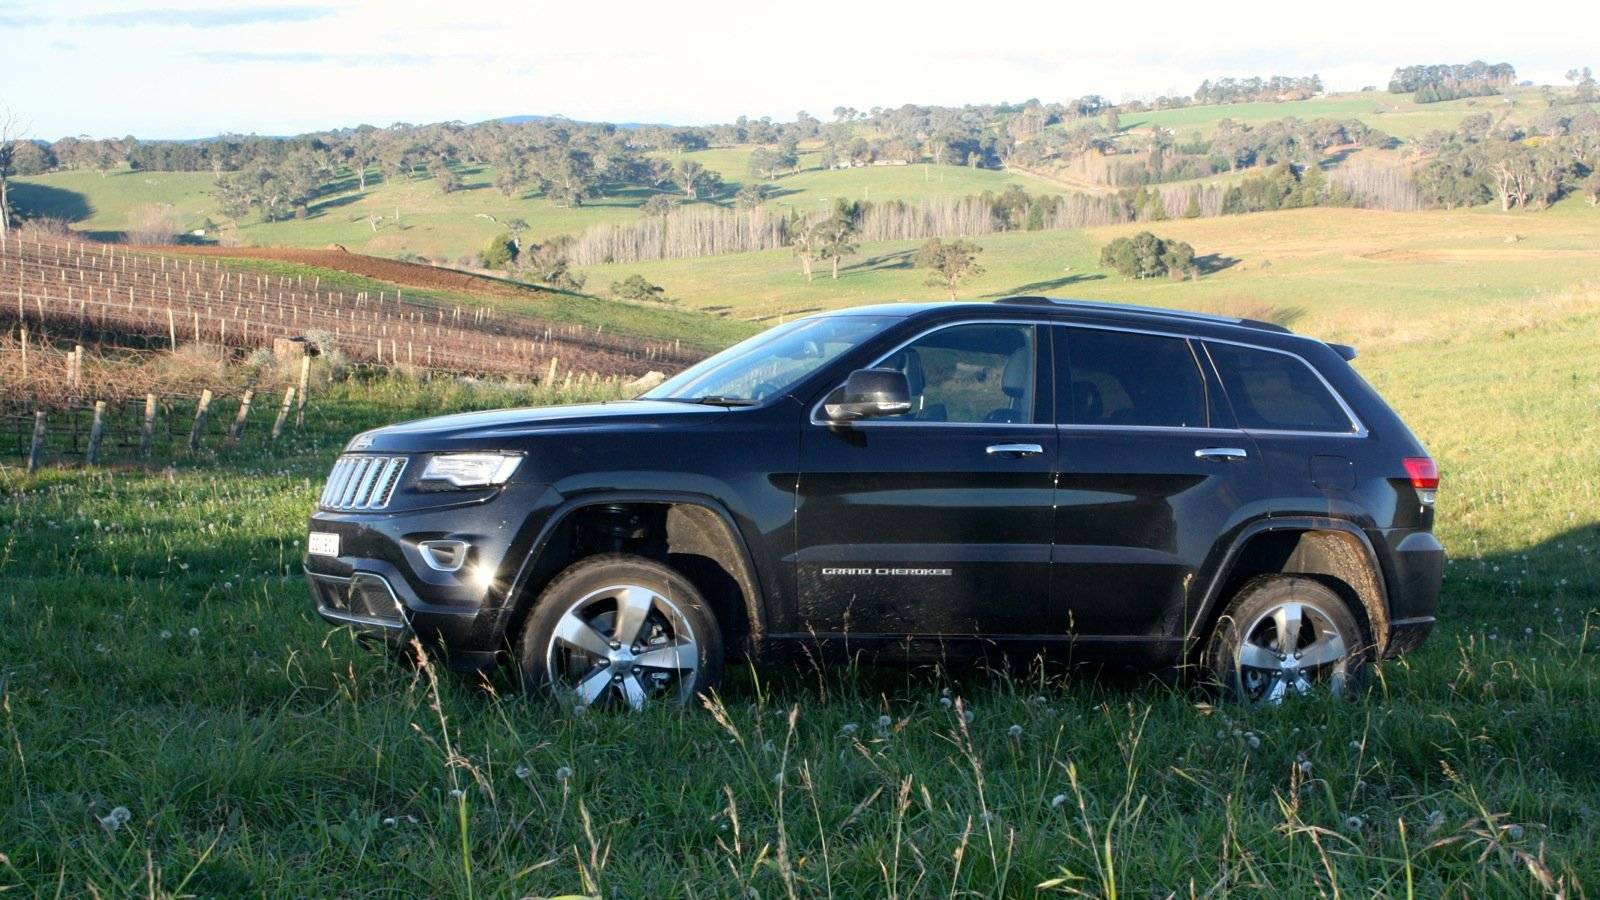 2014 jeep grand cherokee overland review lt3 photos caradvice. Black Bedroom Furniture Sets. Home Design Ideas